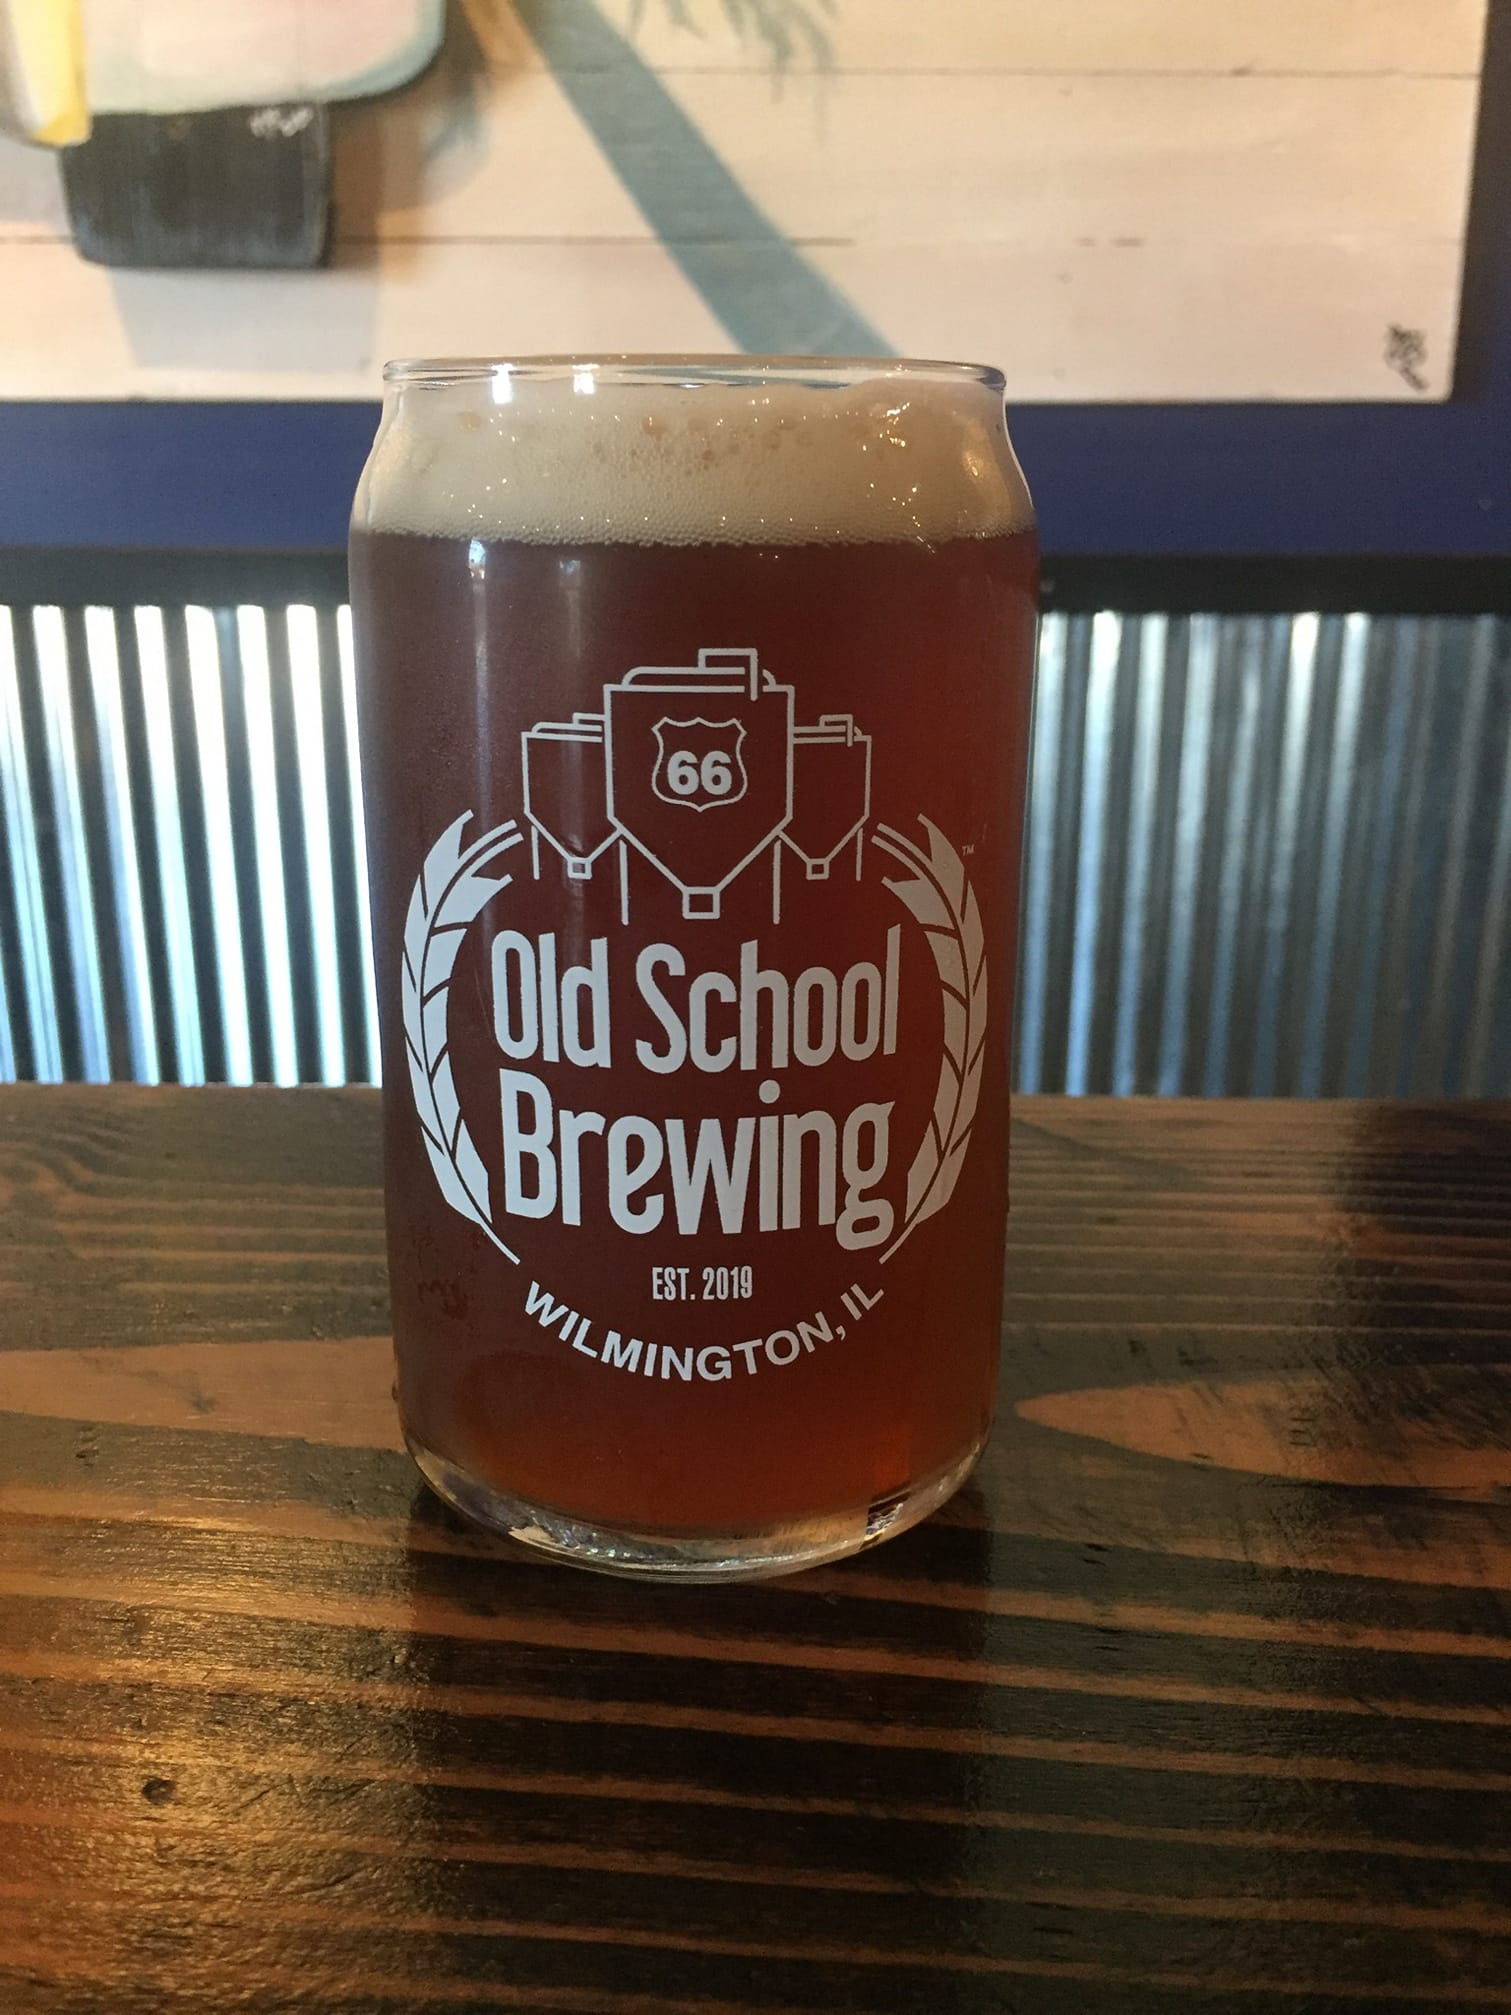 River Bay Red in a glass from Rt66 Old School Brewing